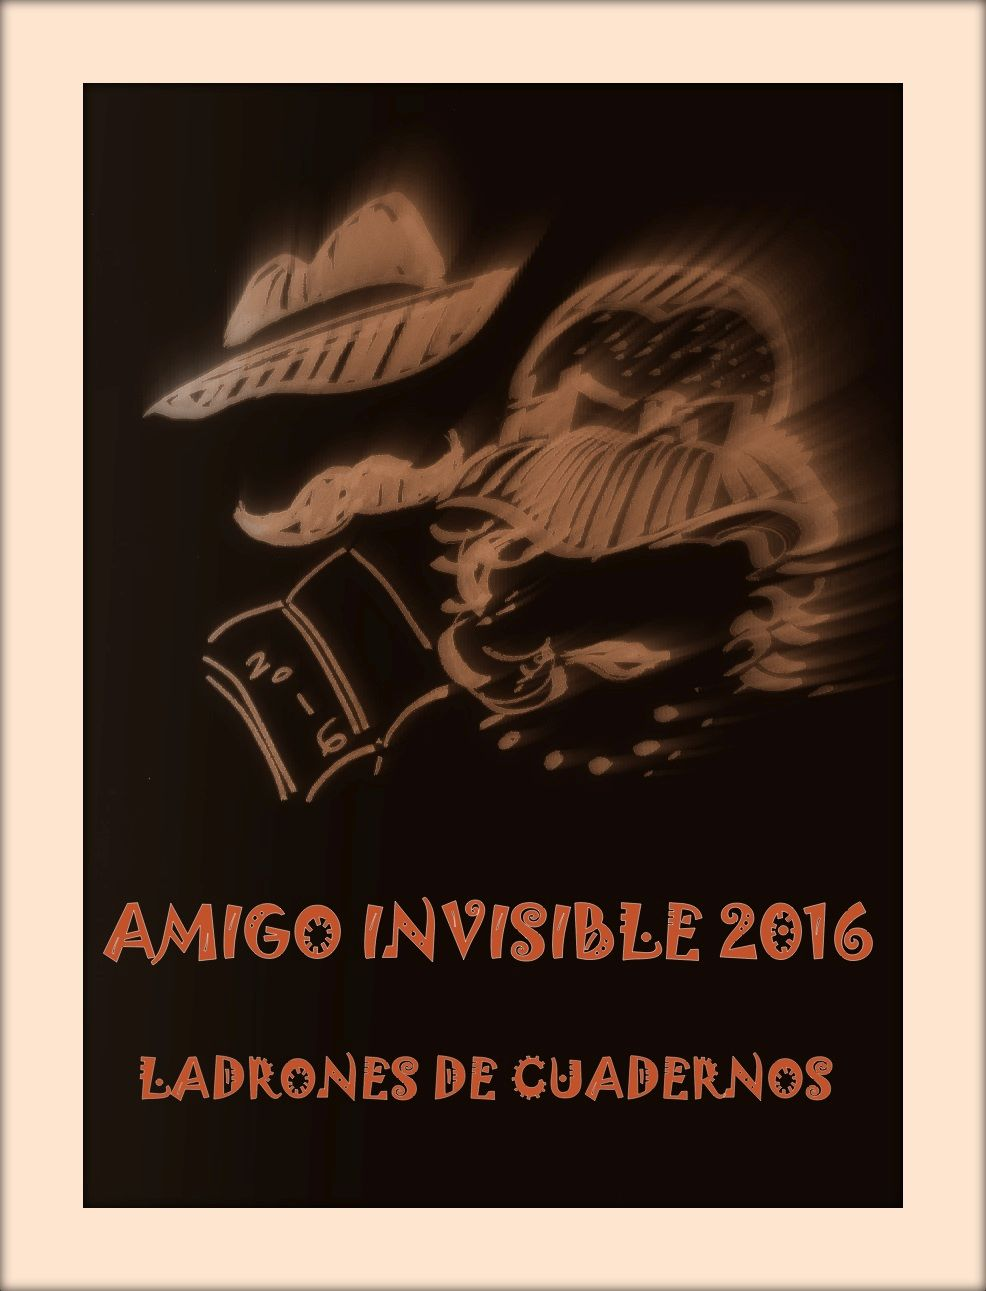 AMIGO INVISIBLE 2016